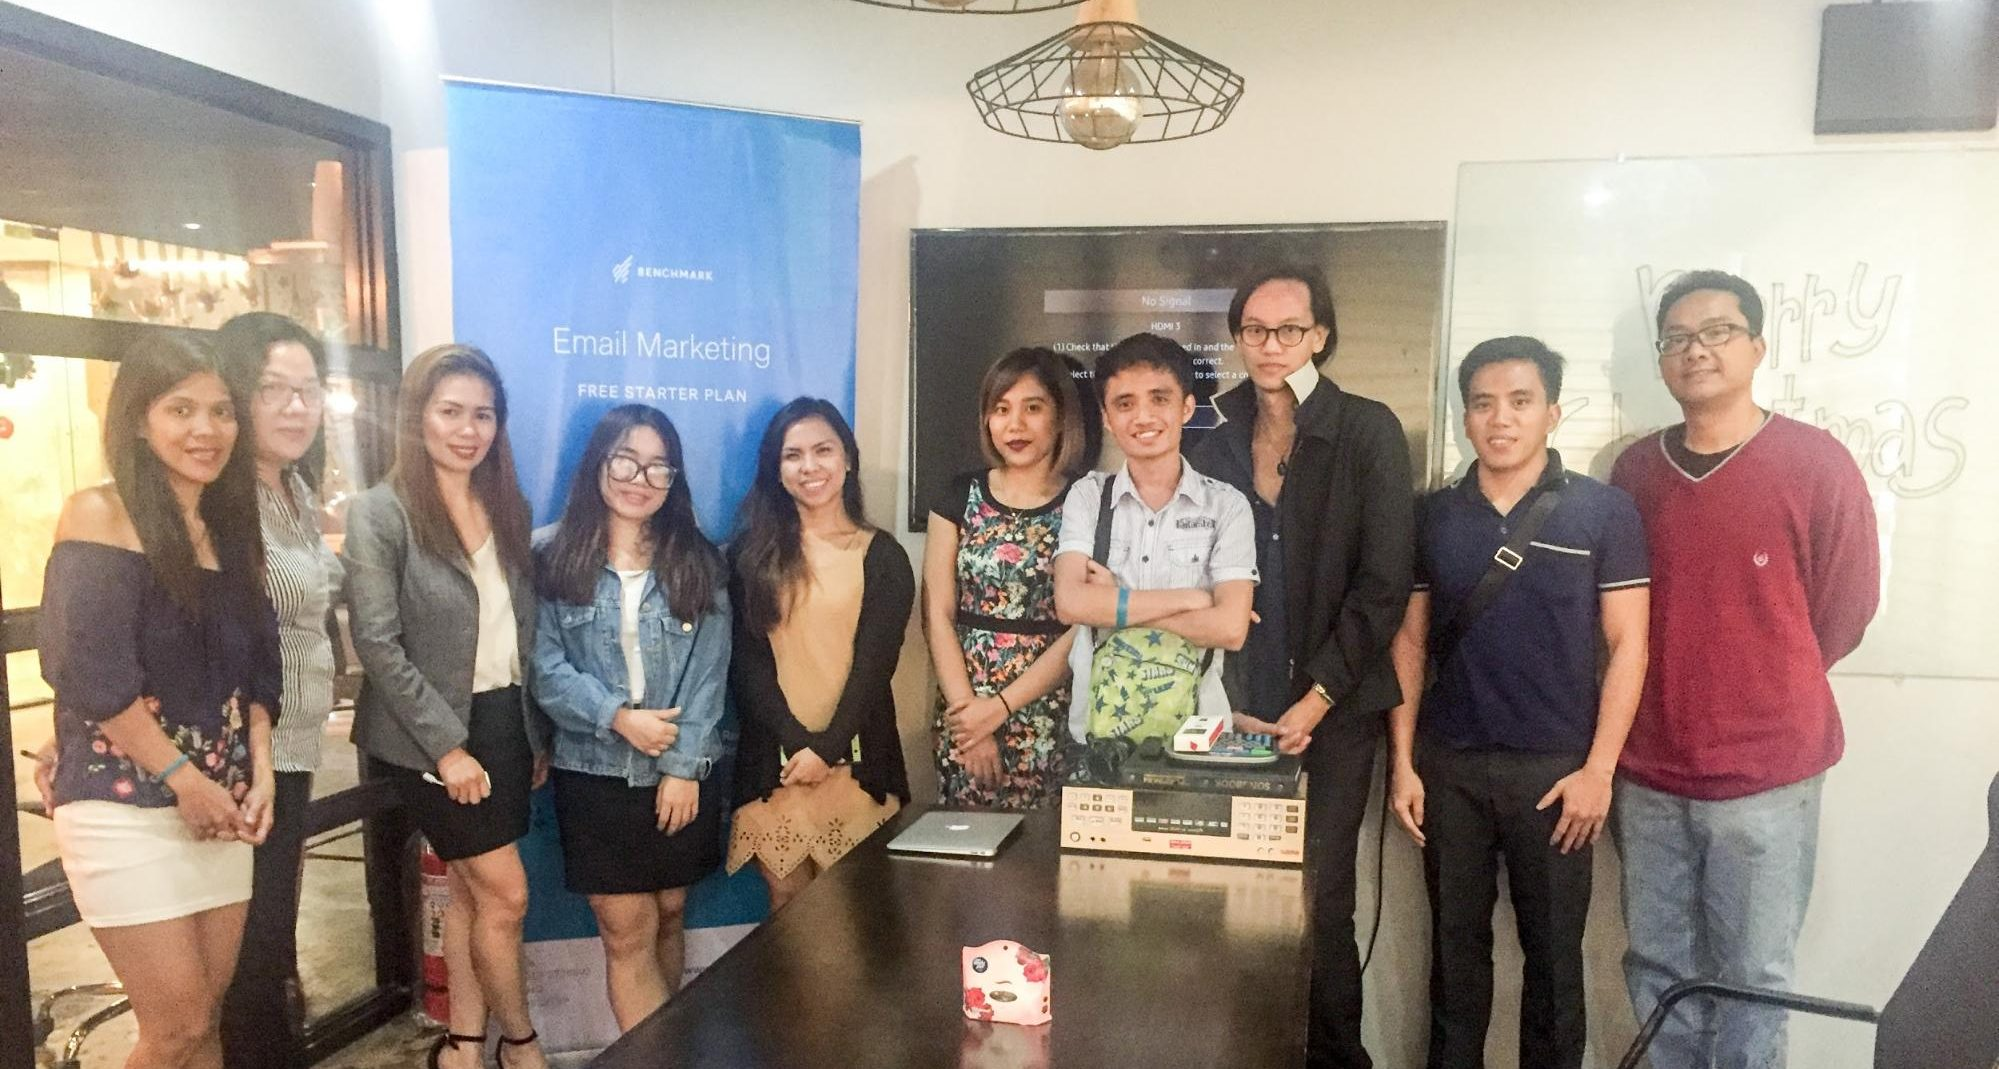 Free email marketing workshop in the Philippines